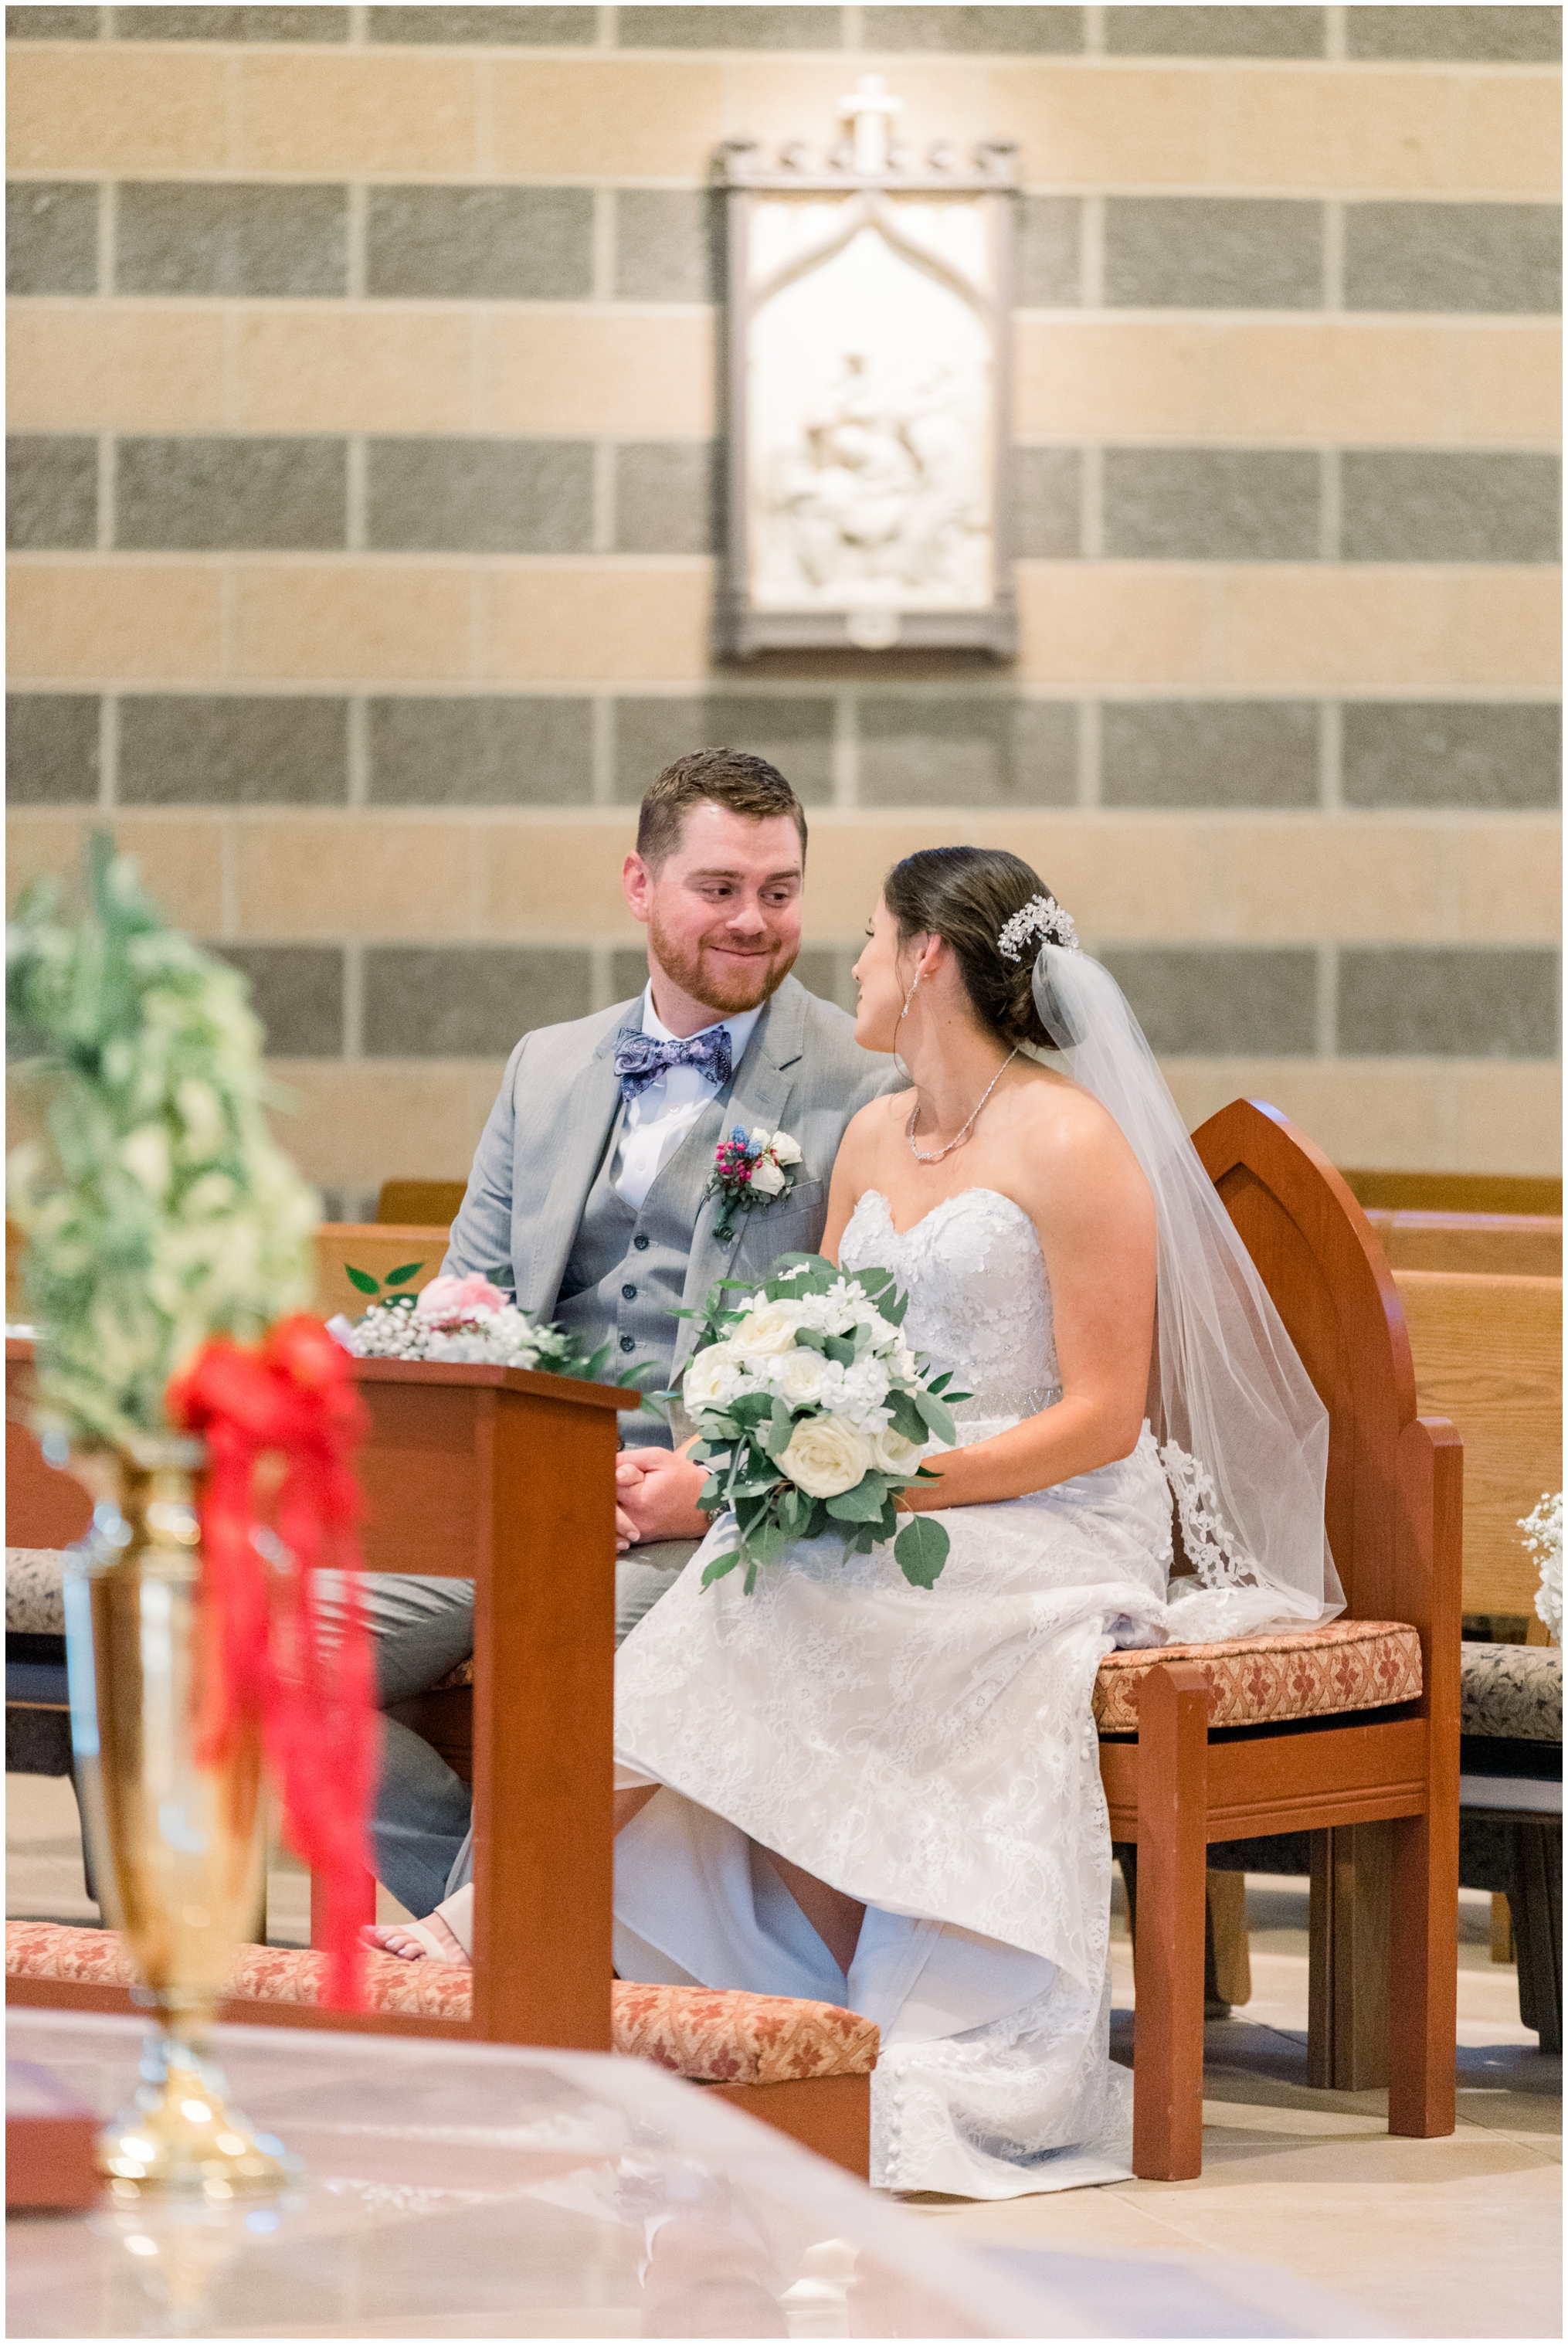 Krista Brackin Photography | April Wedding at The Carriage House at Rockwood Park_0045.jpg